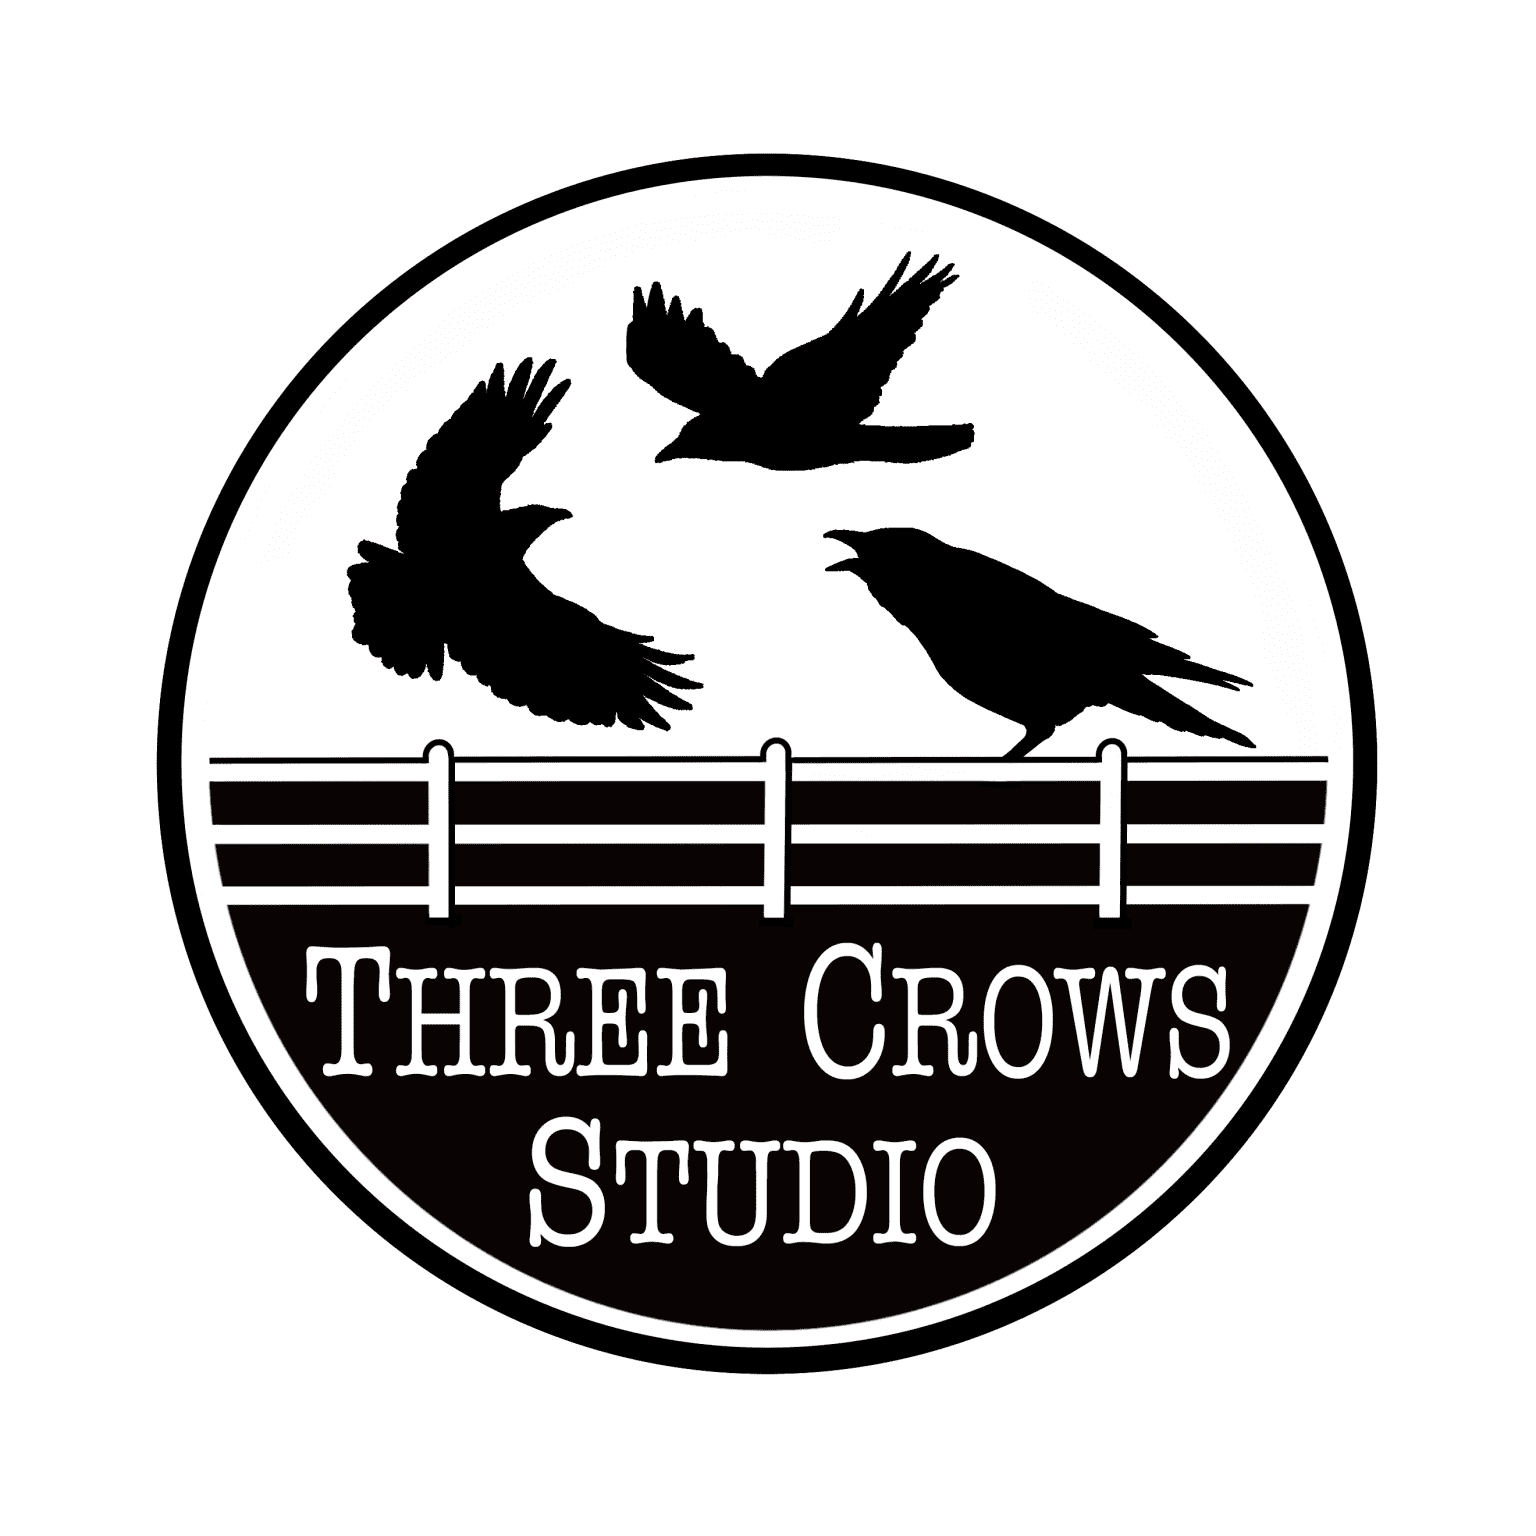 Logo Design for Small Business